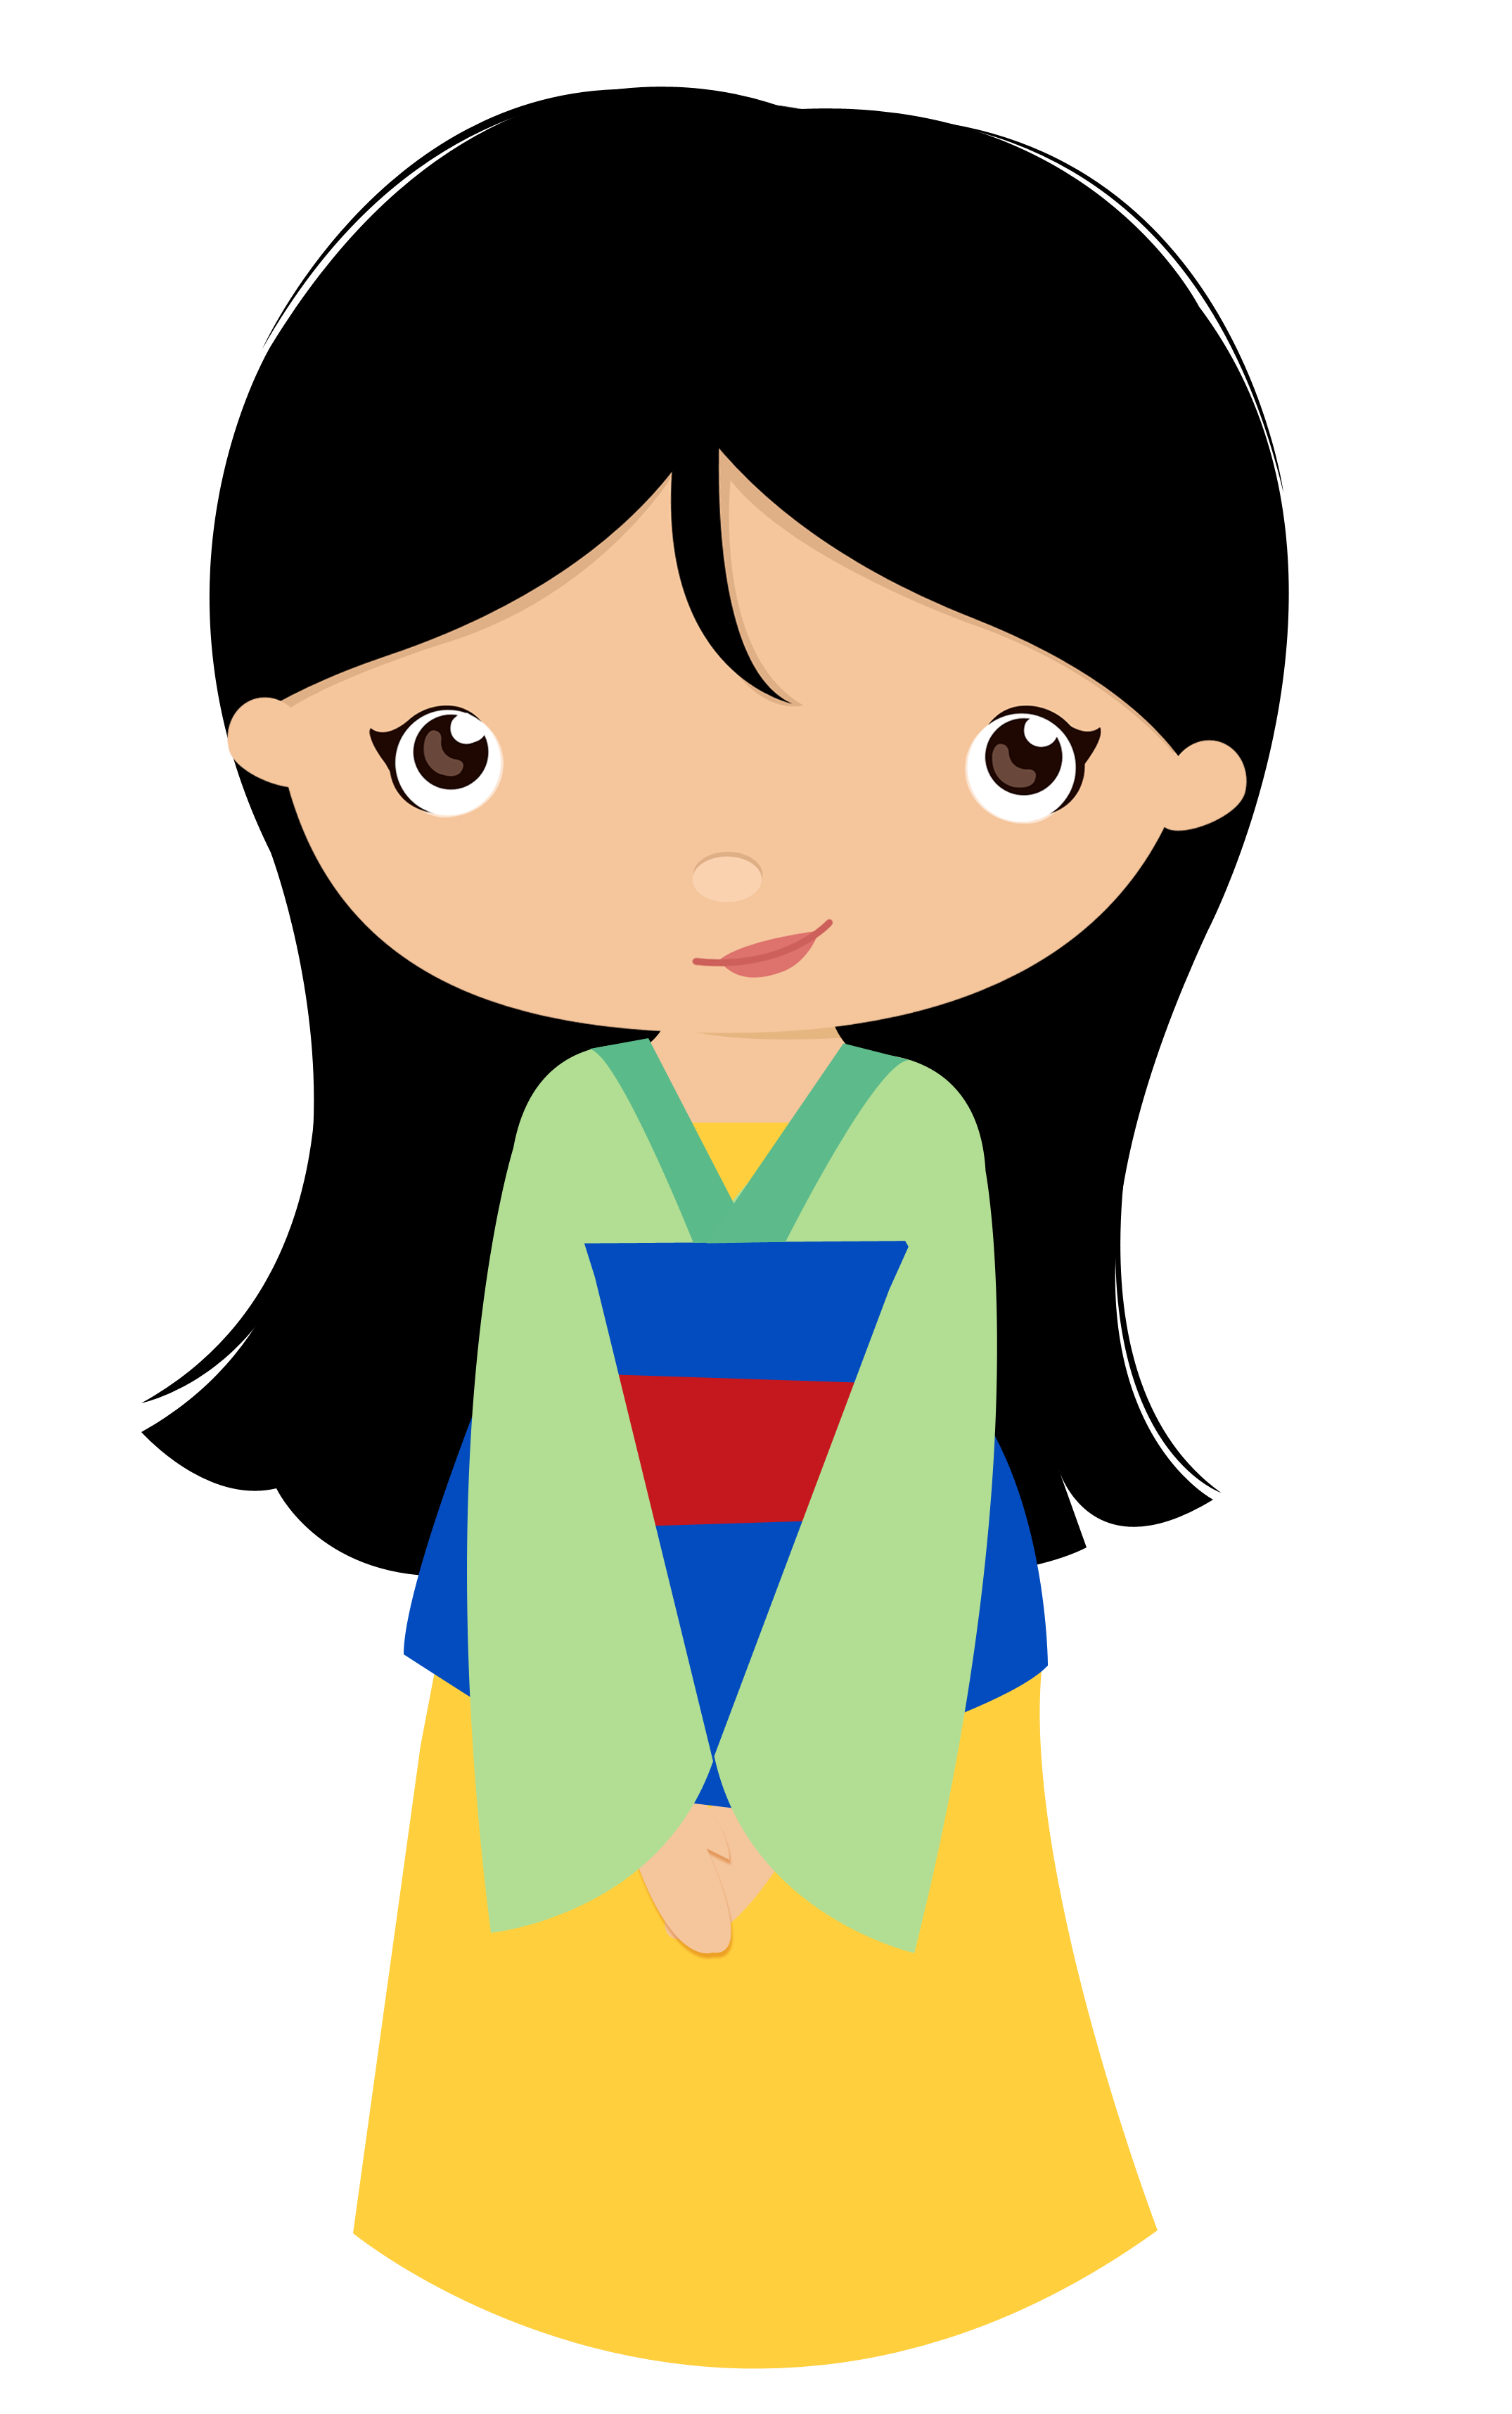 mulan e pocahontas cat traditional princess 1 png minus kids rh pinterest com mulan movie clipart mulan clipart yola